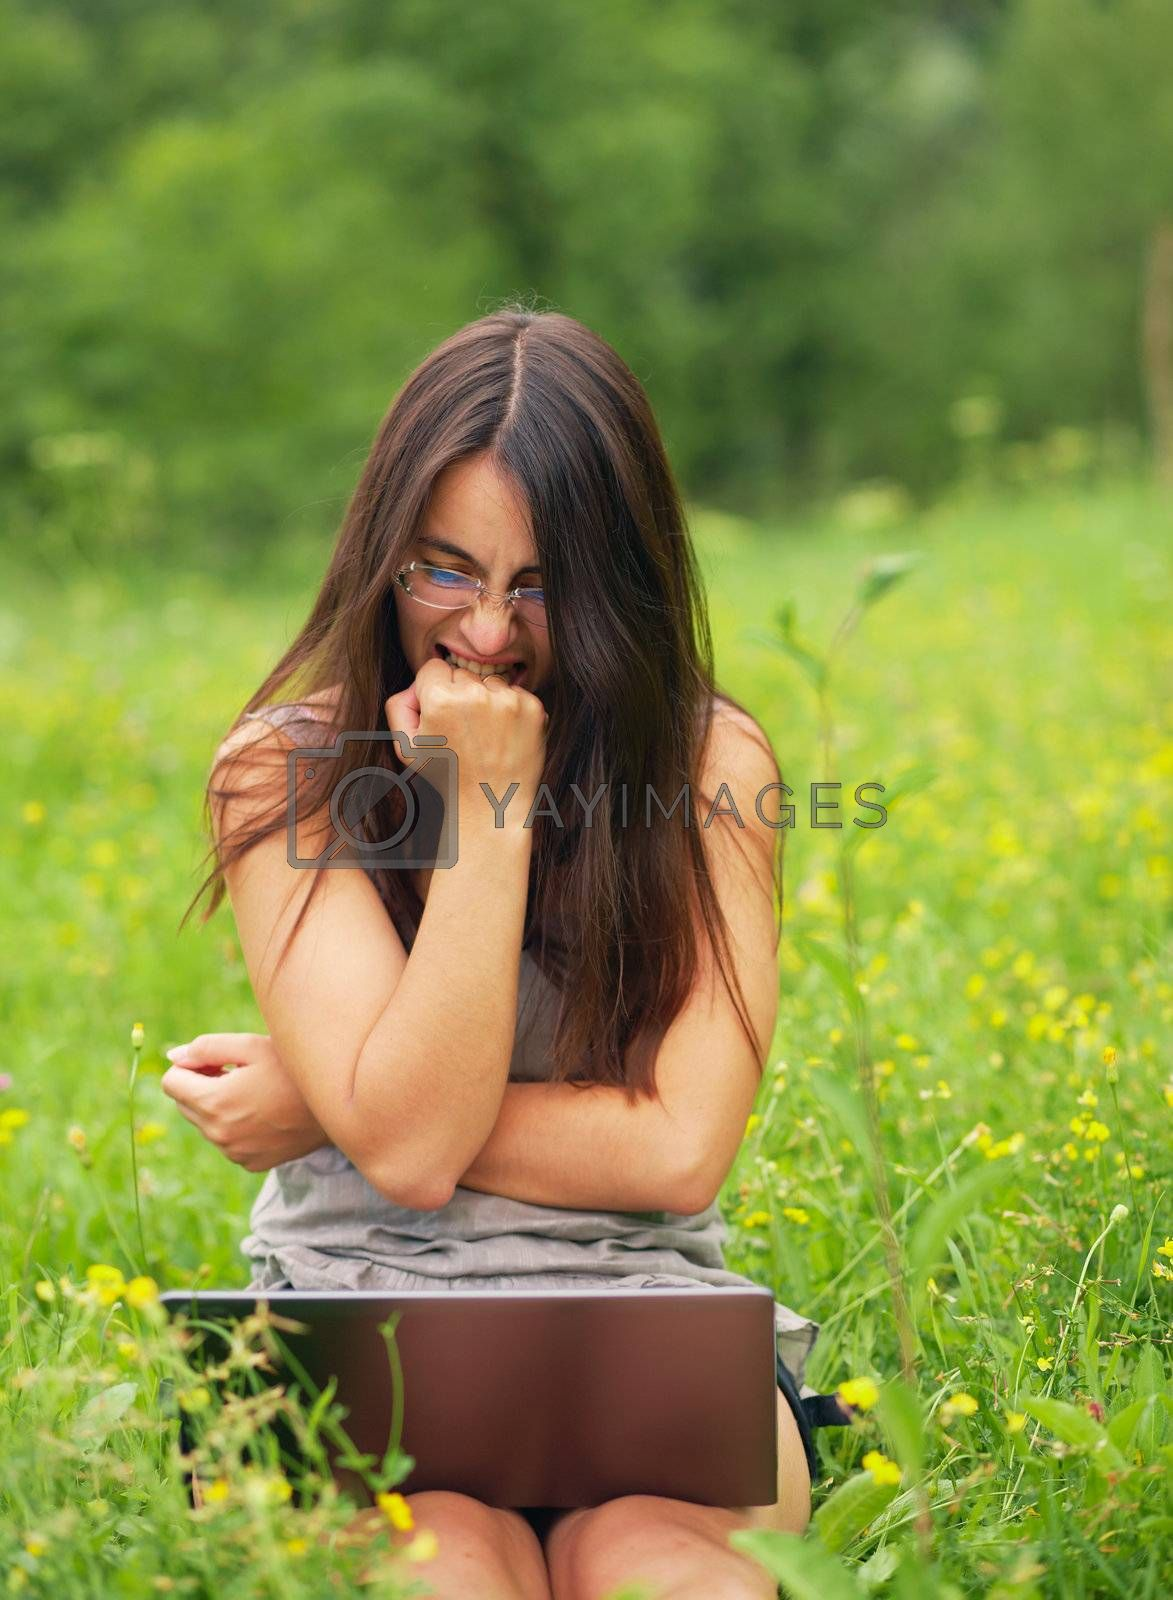 Angry young woman using her laptop outdoors.